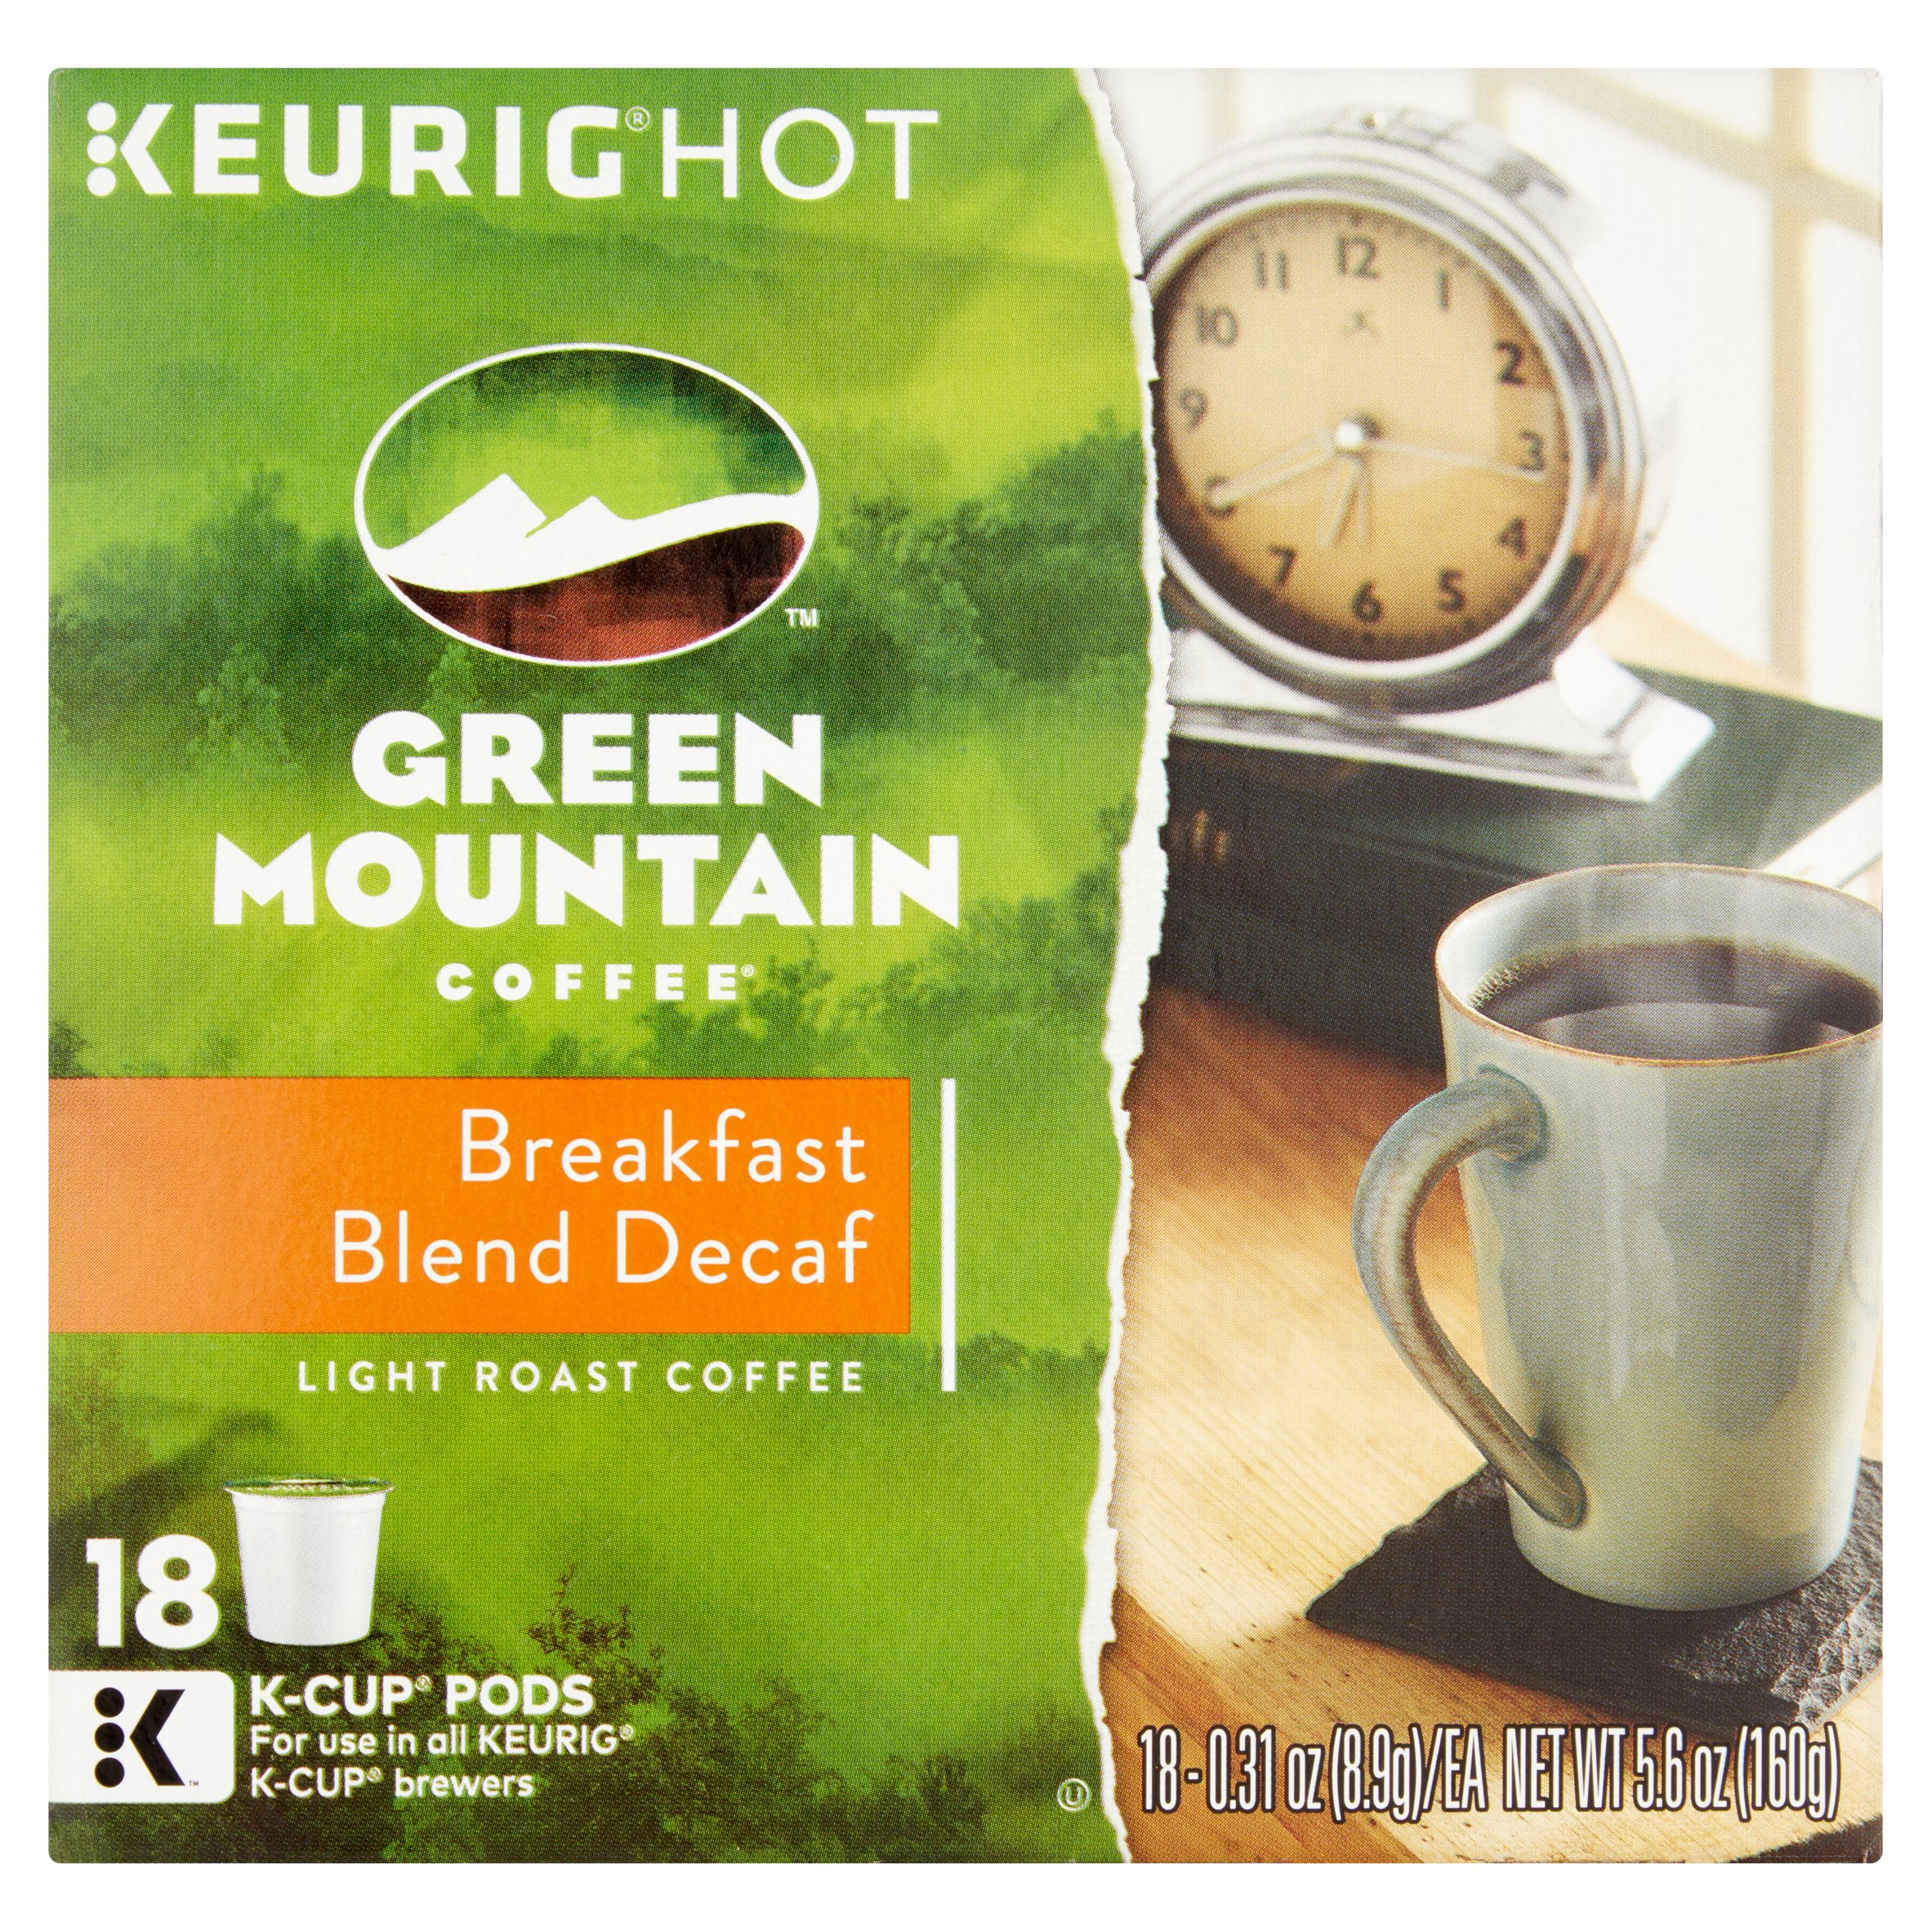 Keurig Hot Green Mountain Coffee Light Roast Coffee Breakfast Blend Decaf K-Cup Pods, 0.31 oz, 18 ct